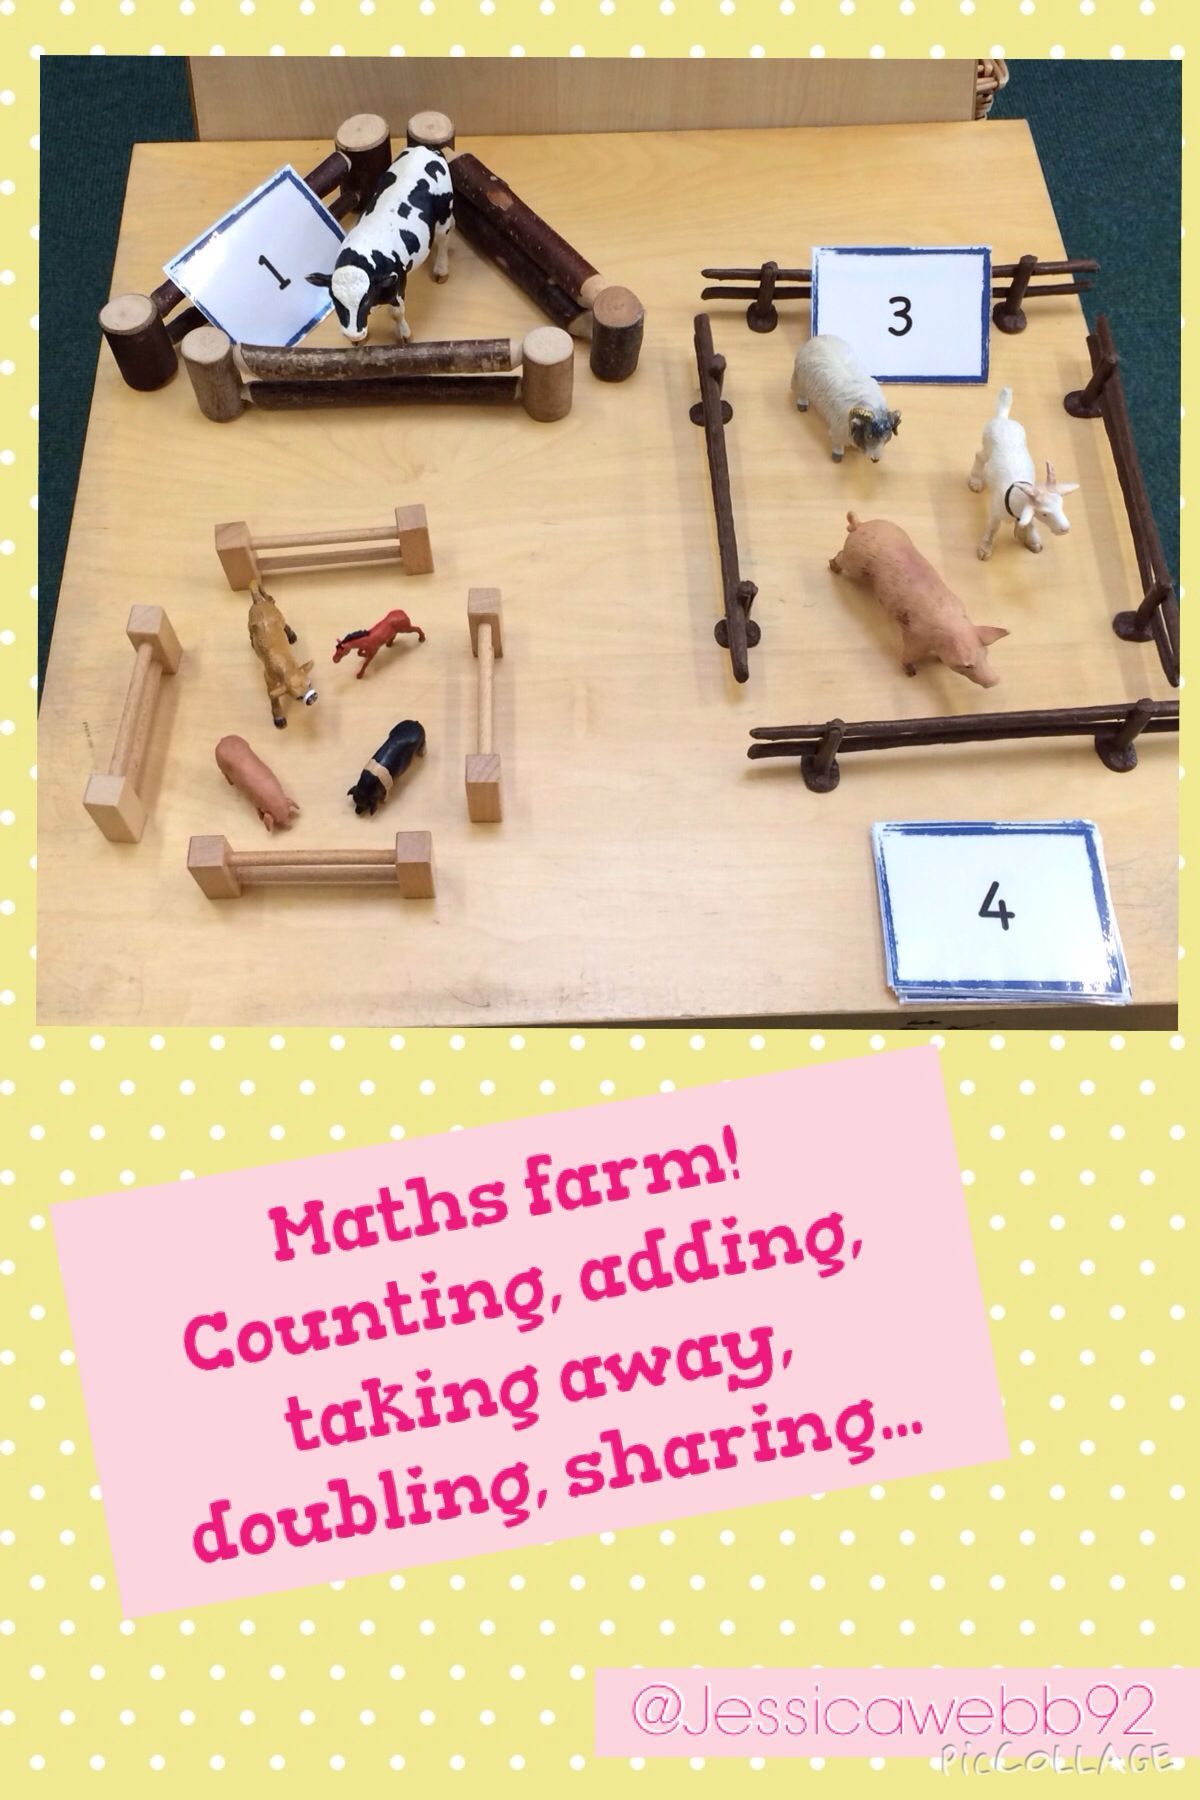 Maths Farm Can Be Used For Counting Adding Taking Away